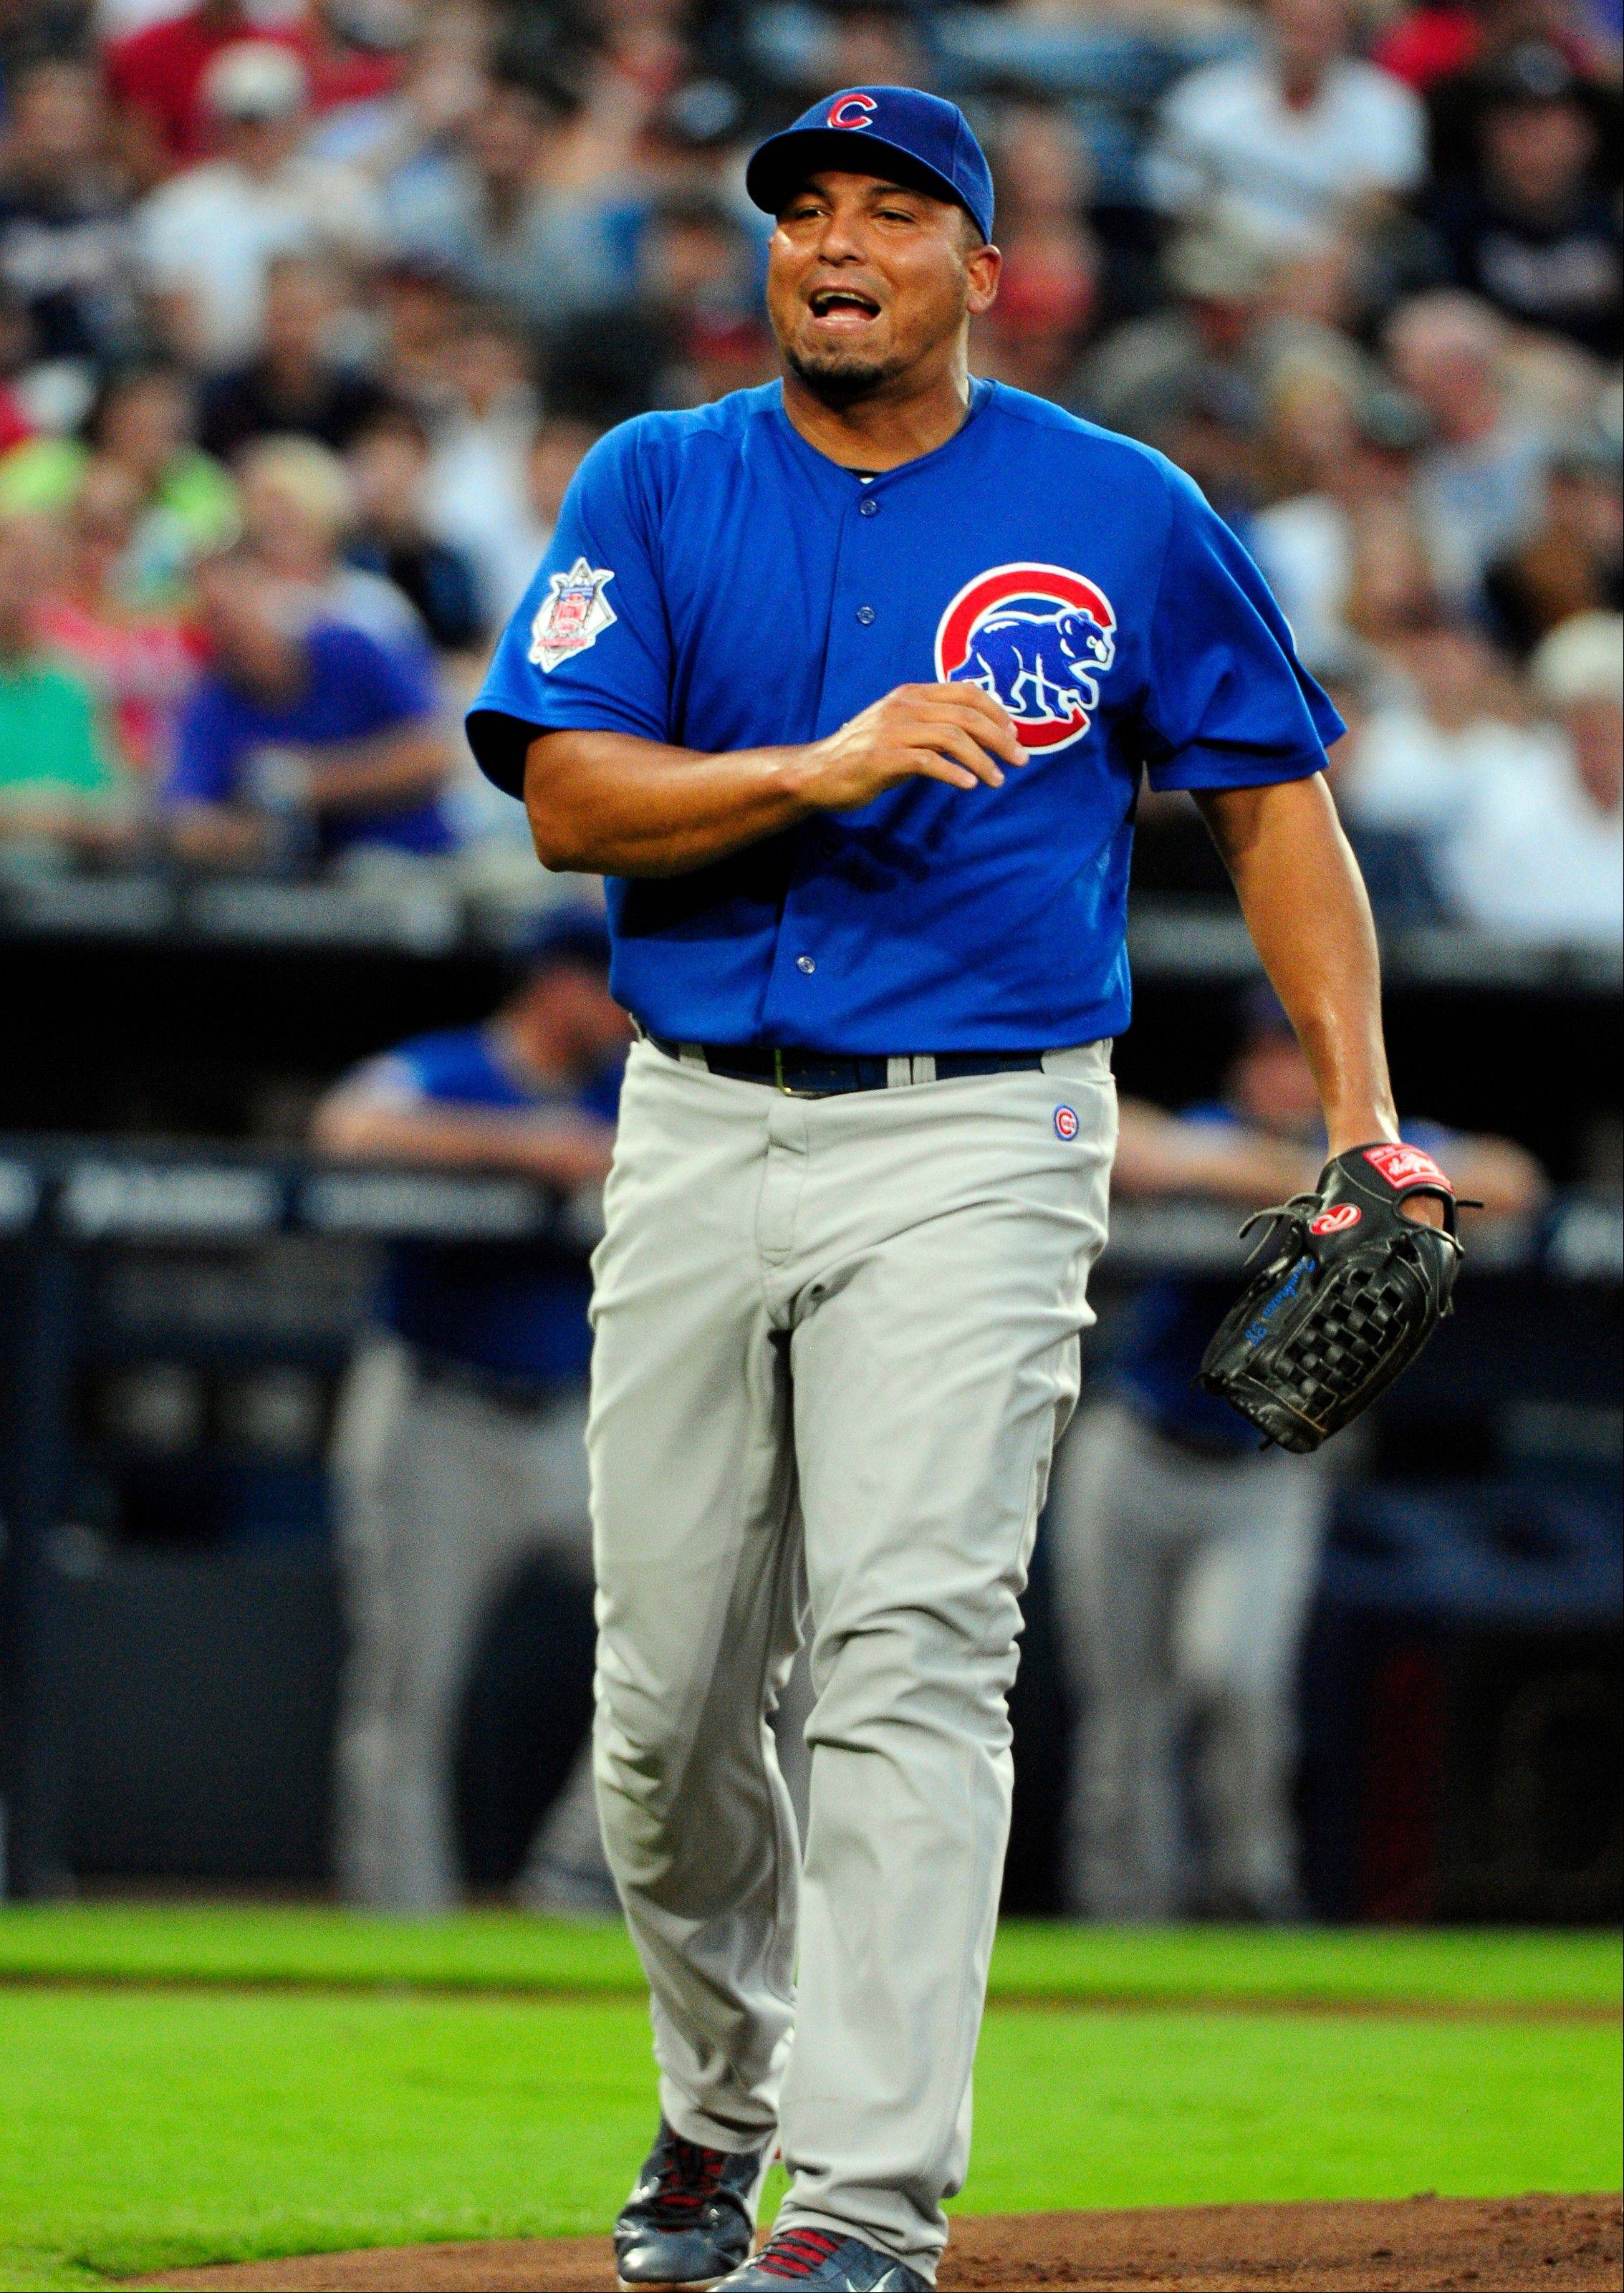 At least Zambrano has a pulse